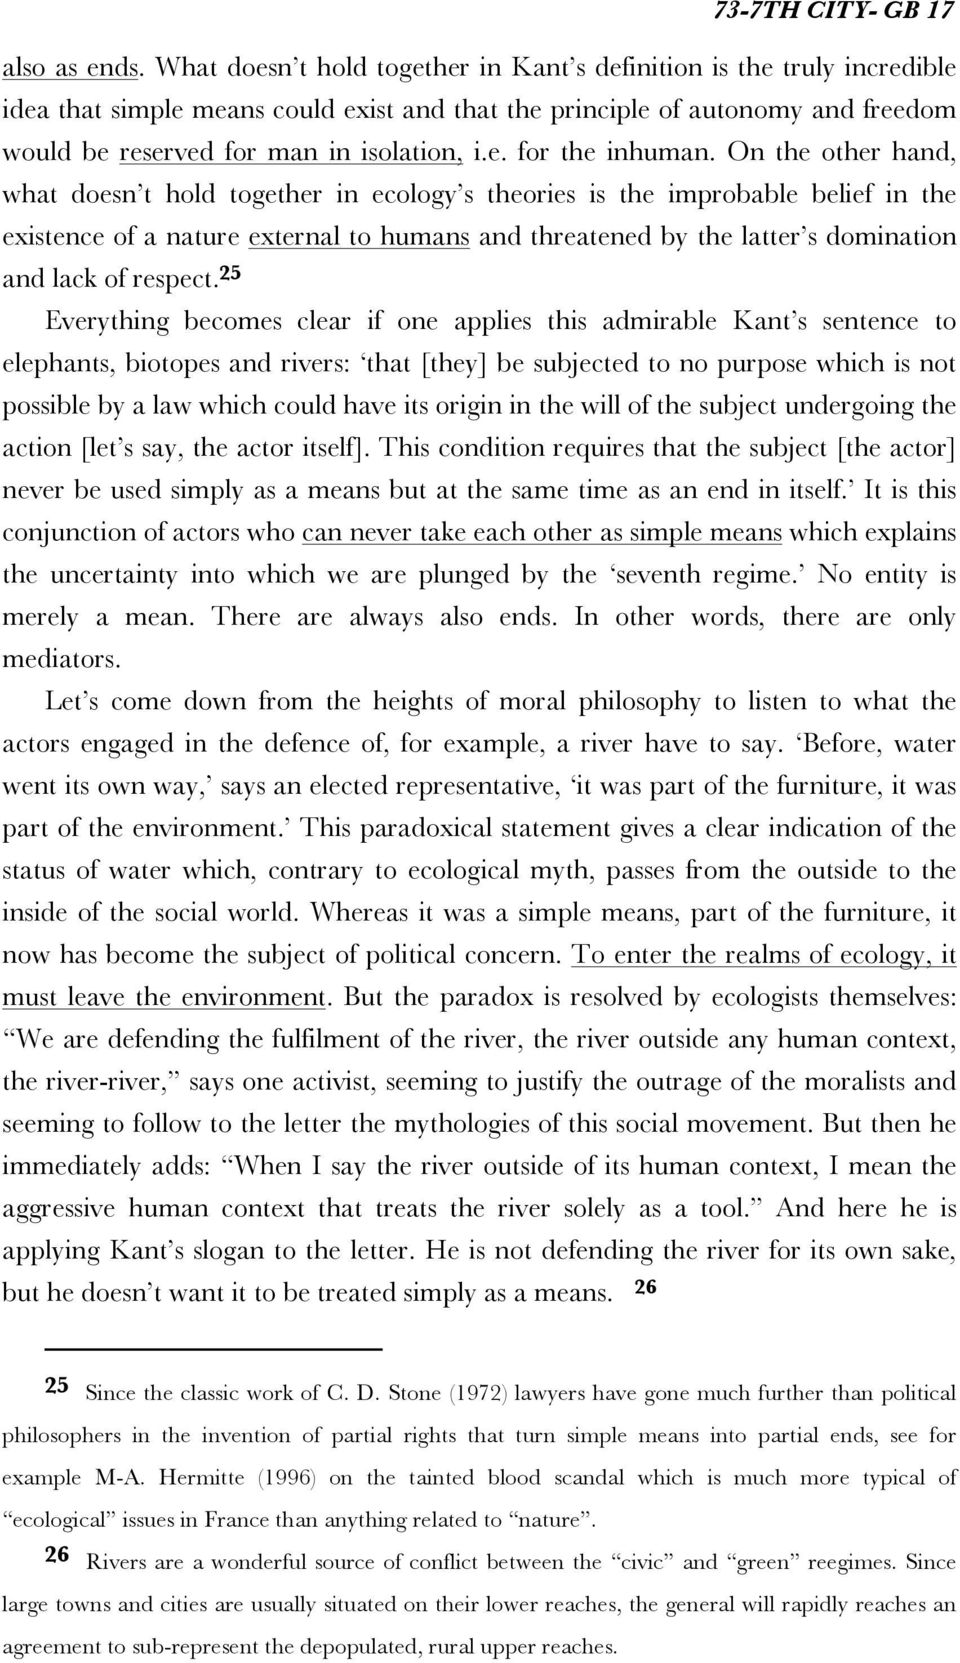 On the other hand, what doesn t hold together in ecology s theories is the improbable belief in the existence of a nature external to humans and threatened by the latter s domination and lack of